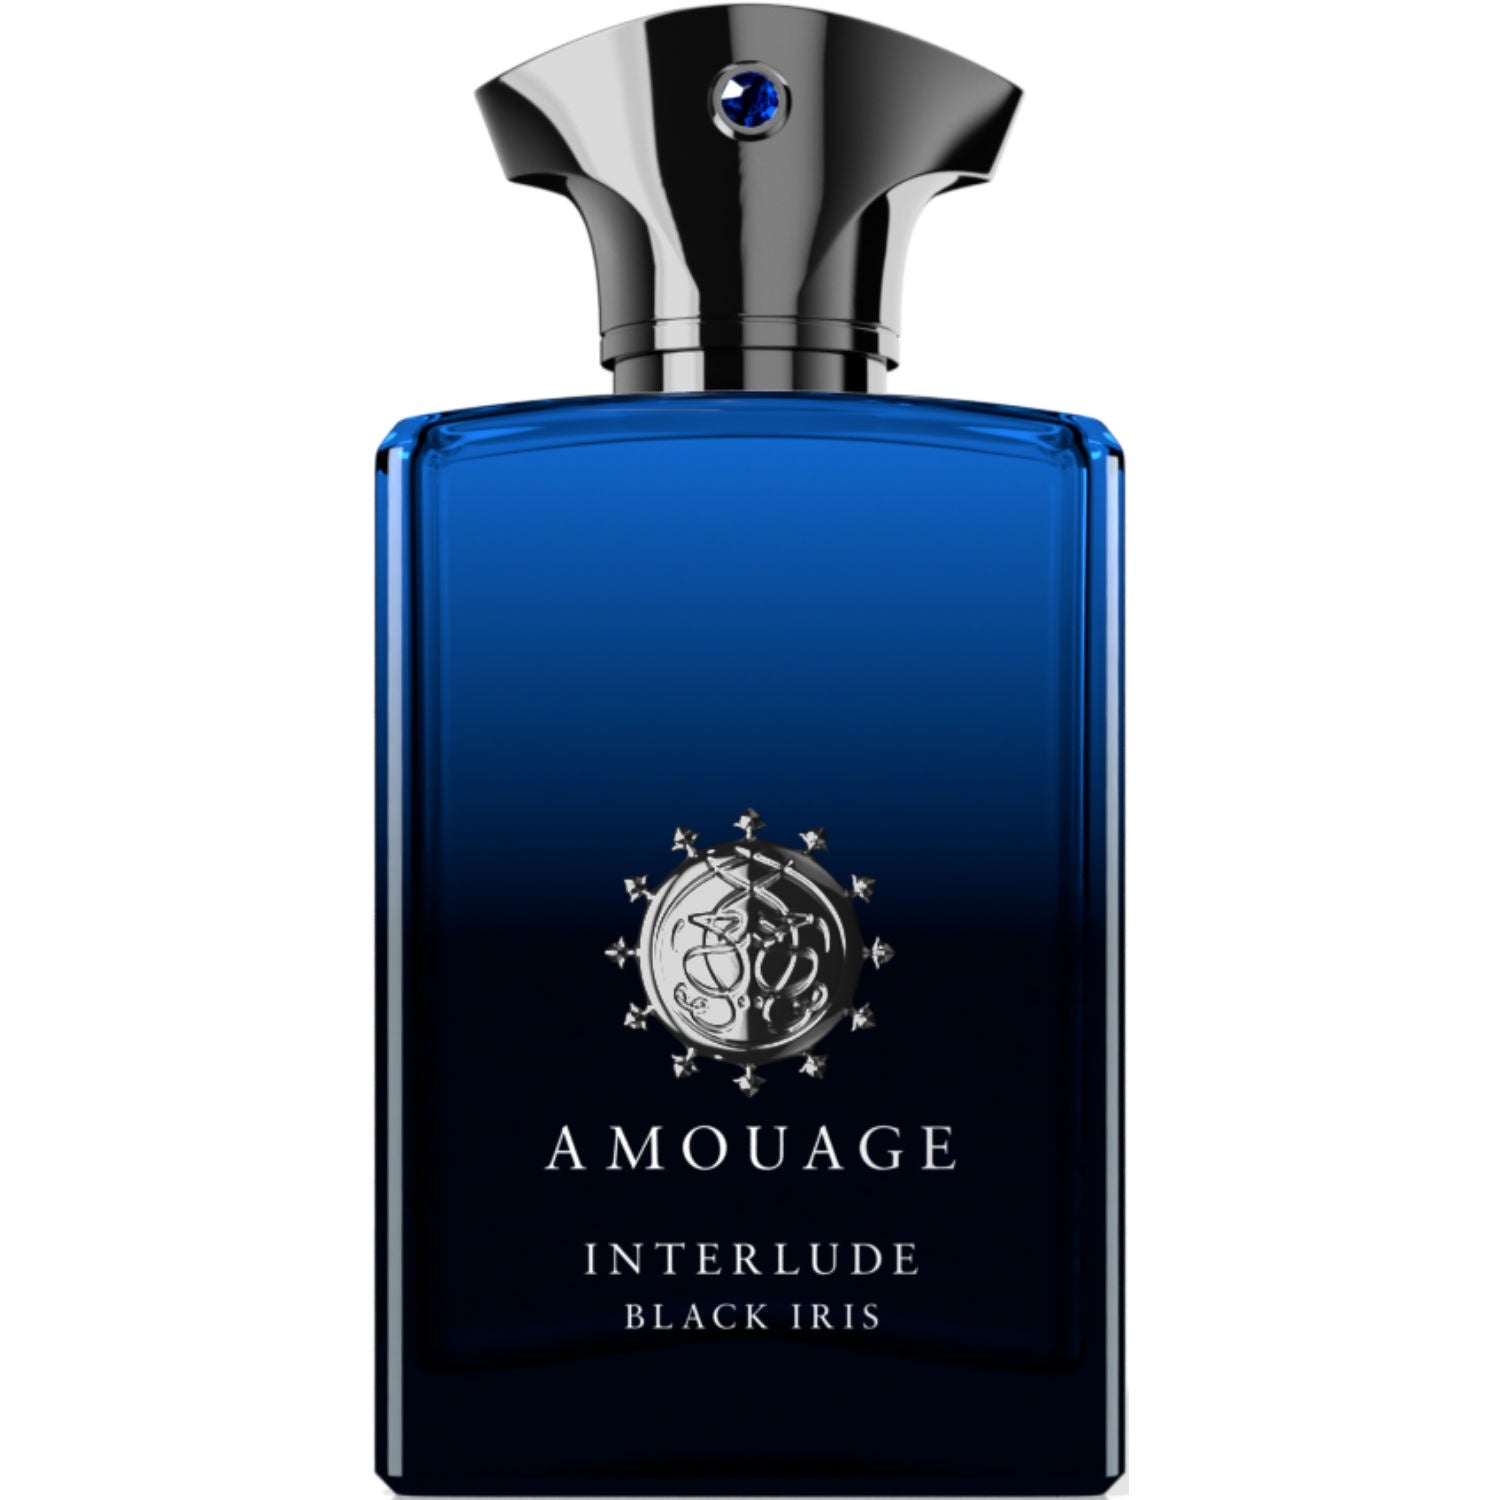 Amouage Interlude Black Iris 100ml